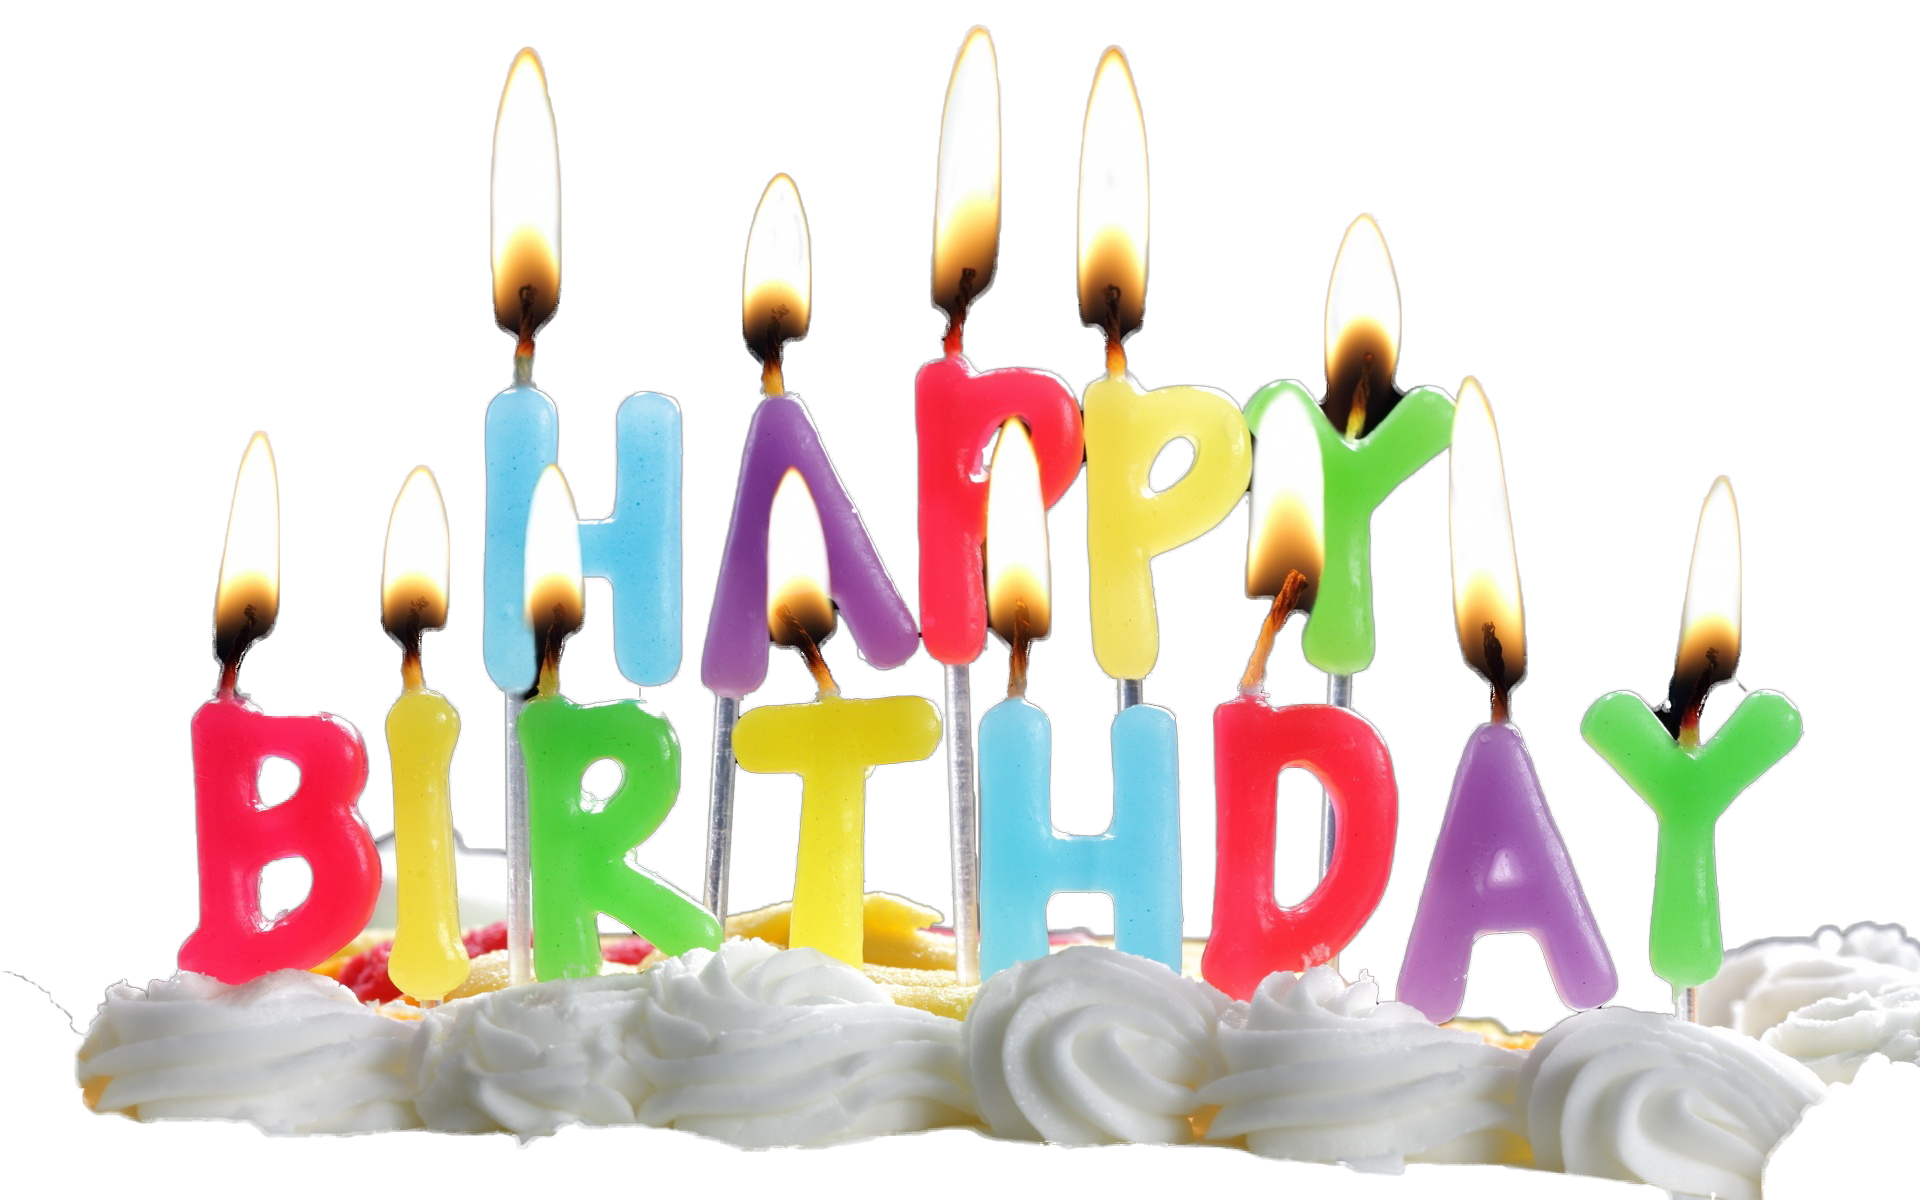 1 year birthday candles png. Transparent free images only clip transparent download